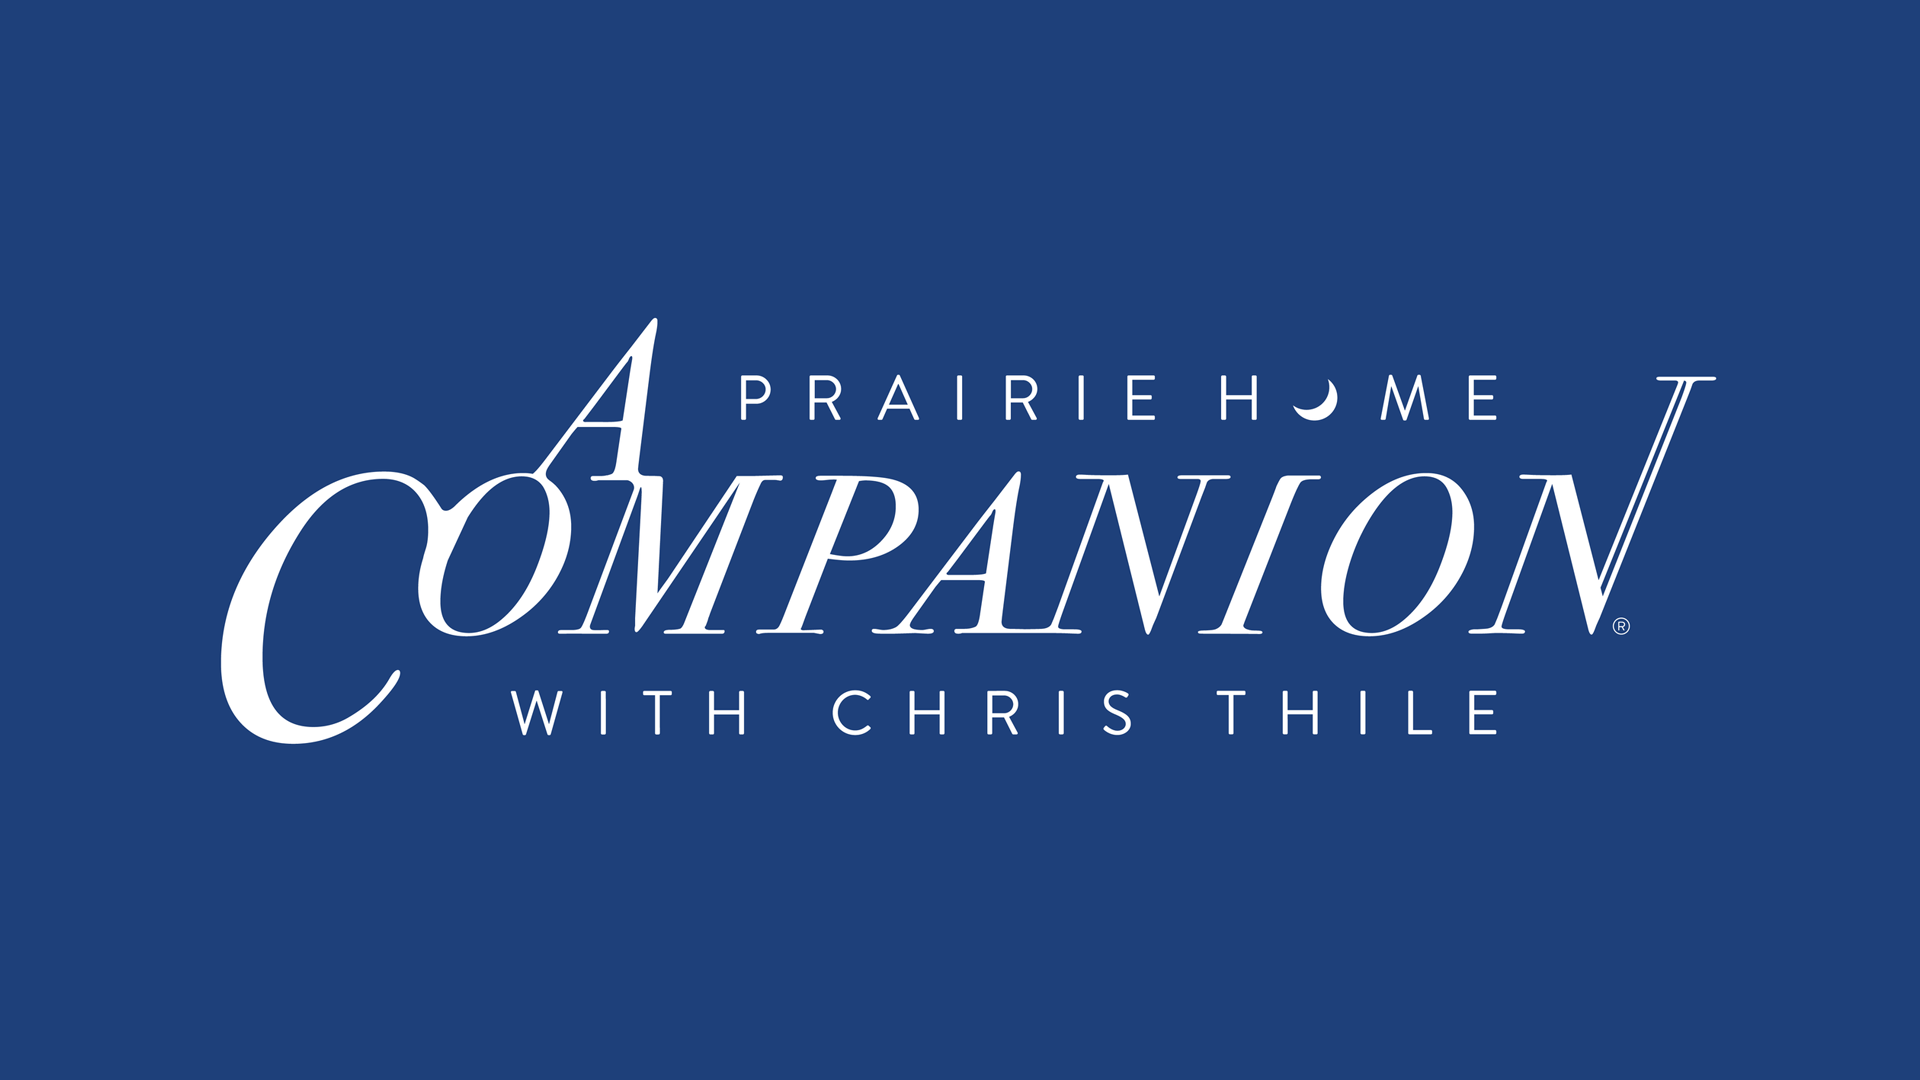 A Prairie Home Companion airs Saturdays on NPR 89.1.